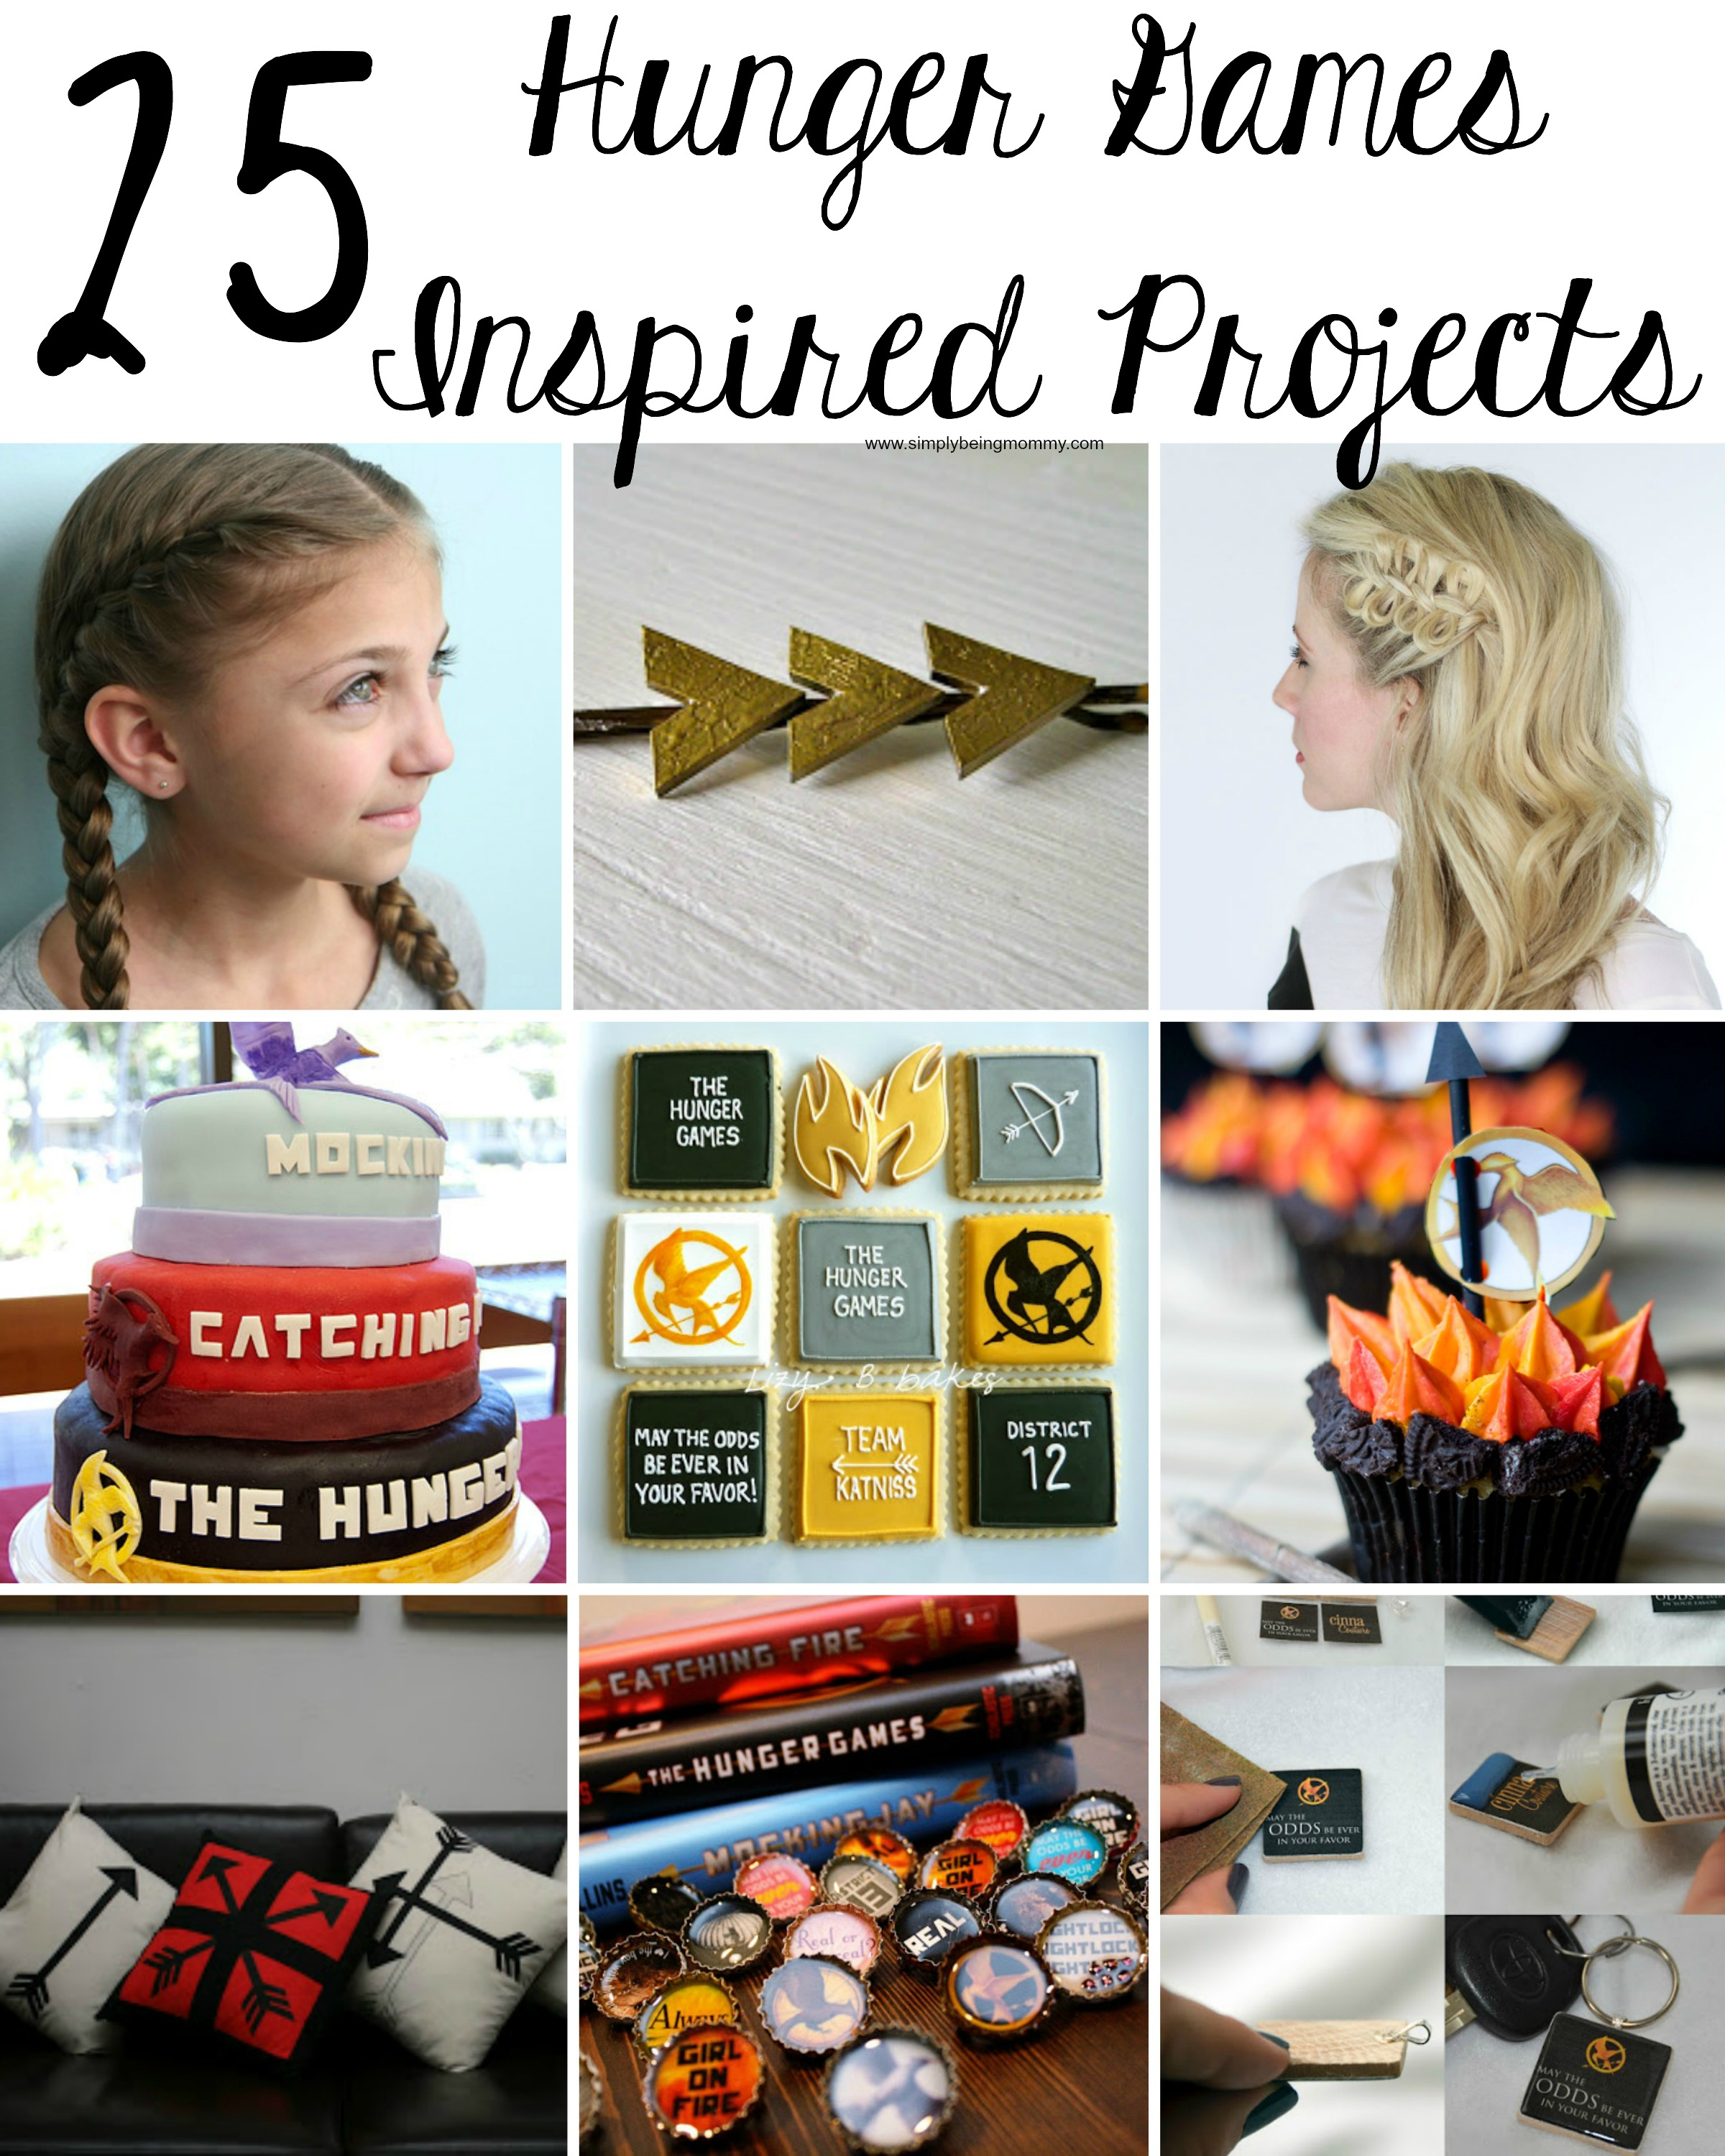 25 Diy Decorating Projects That You Are Inspired To Do: The Hunger Games-Inspired Projects